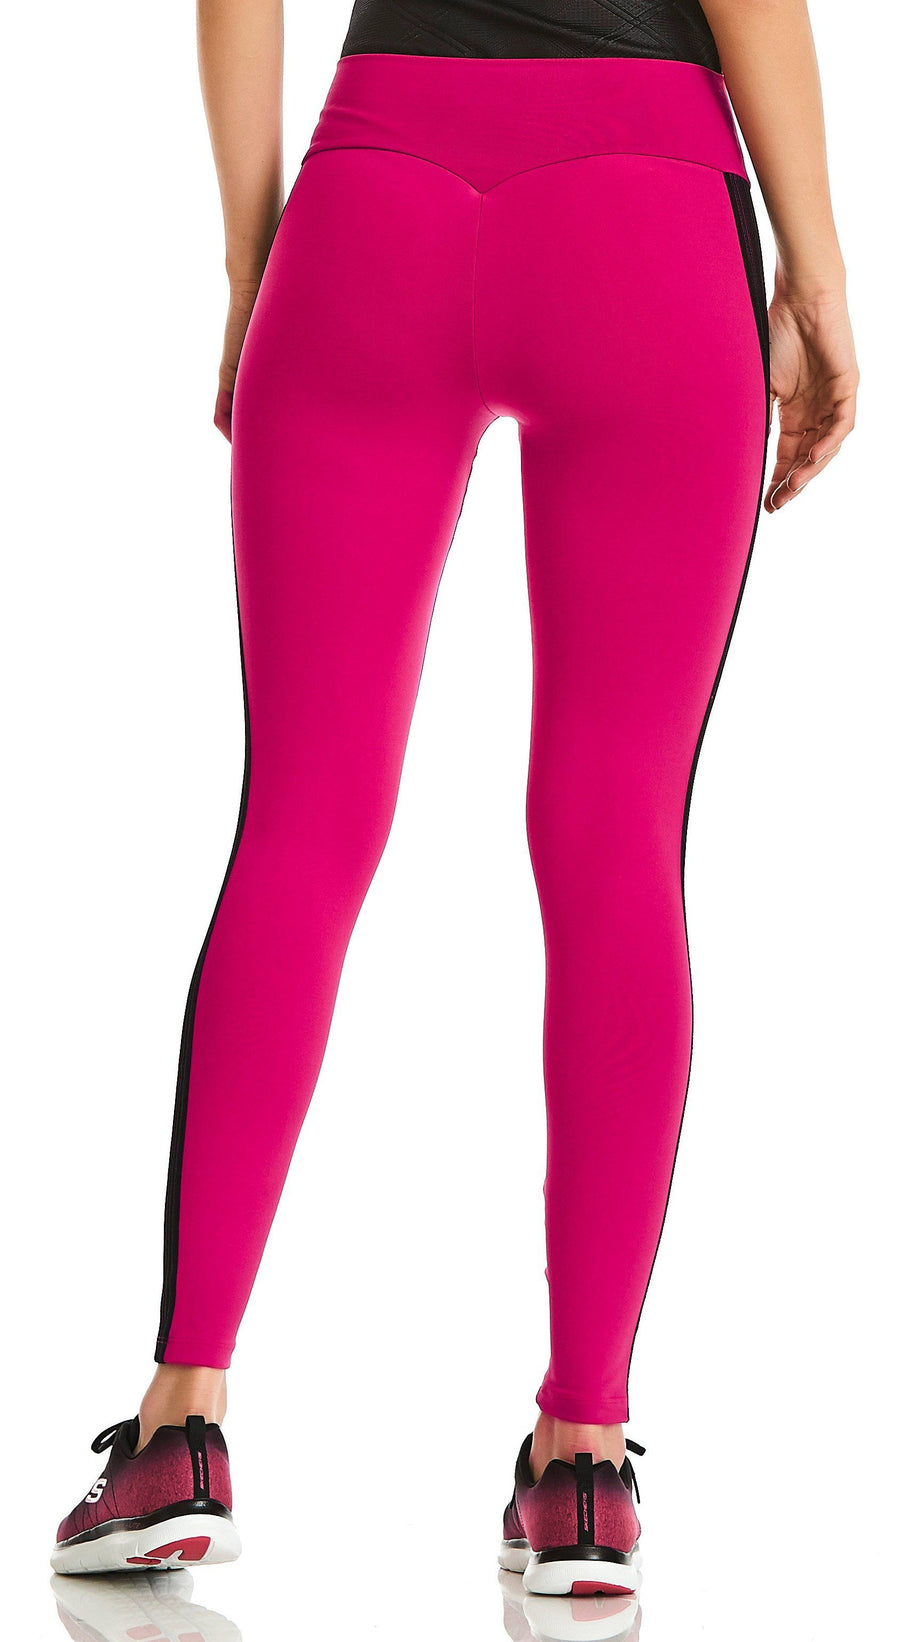 Brazilian Legging -  Butt Enhancing Knockout Pink